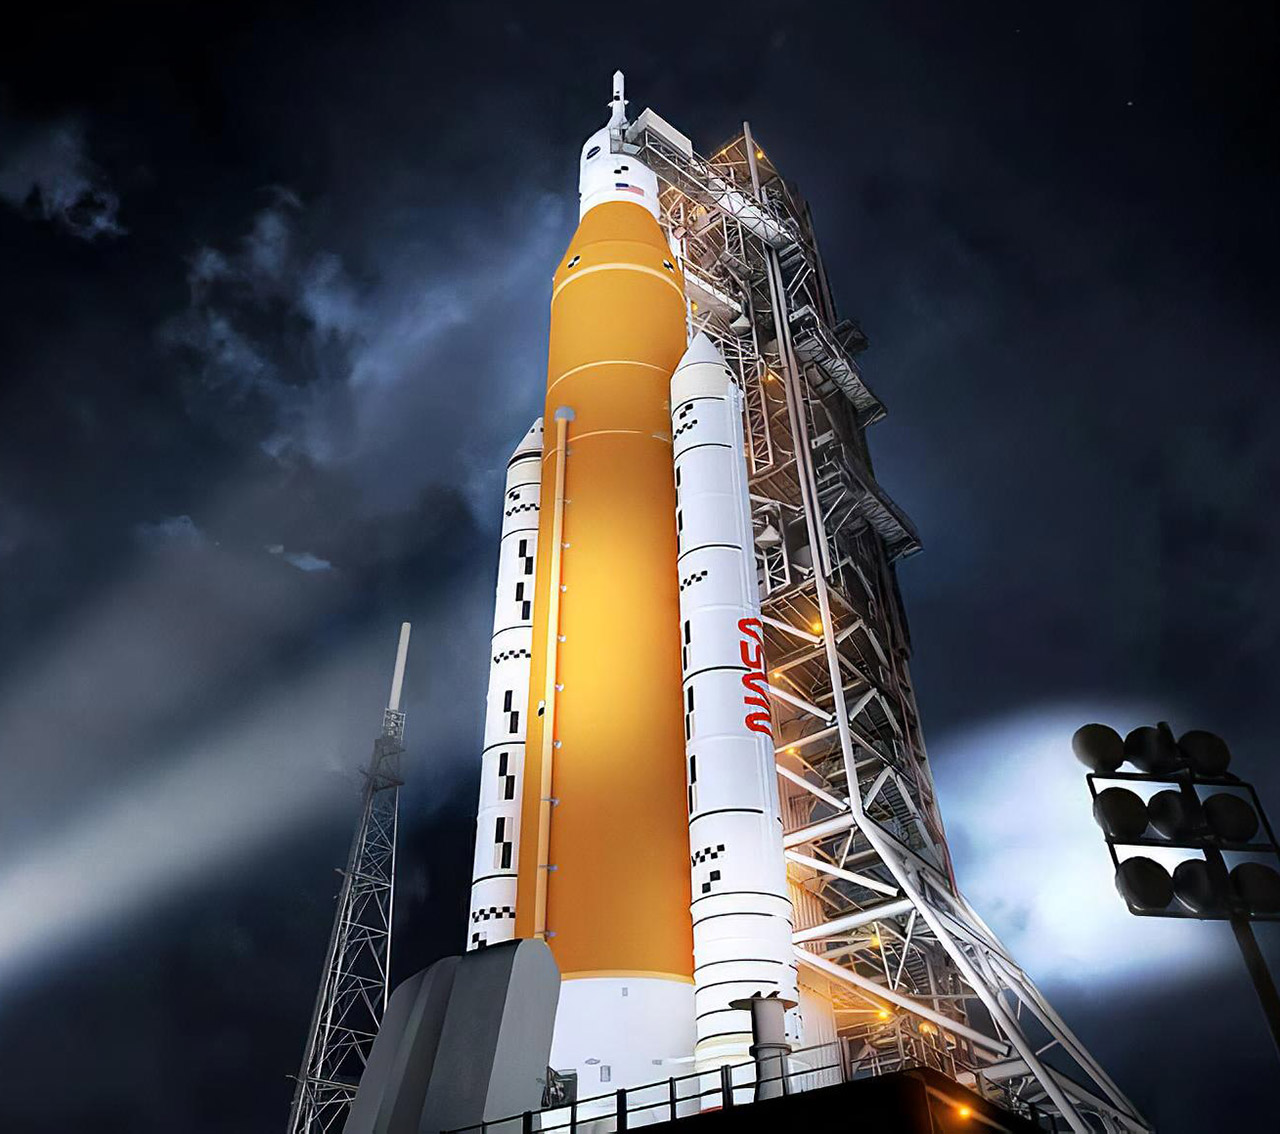 NASA Space Launch System Fire Test Moon Rocket